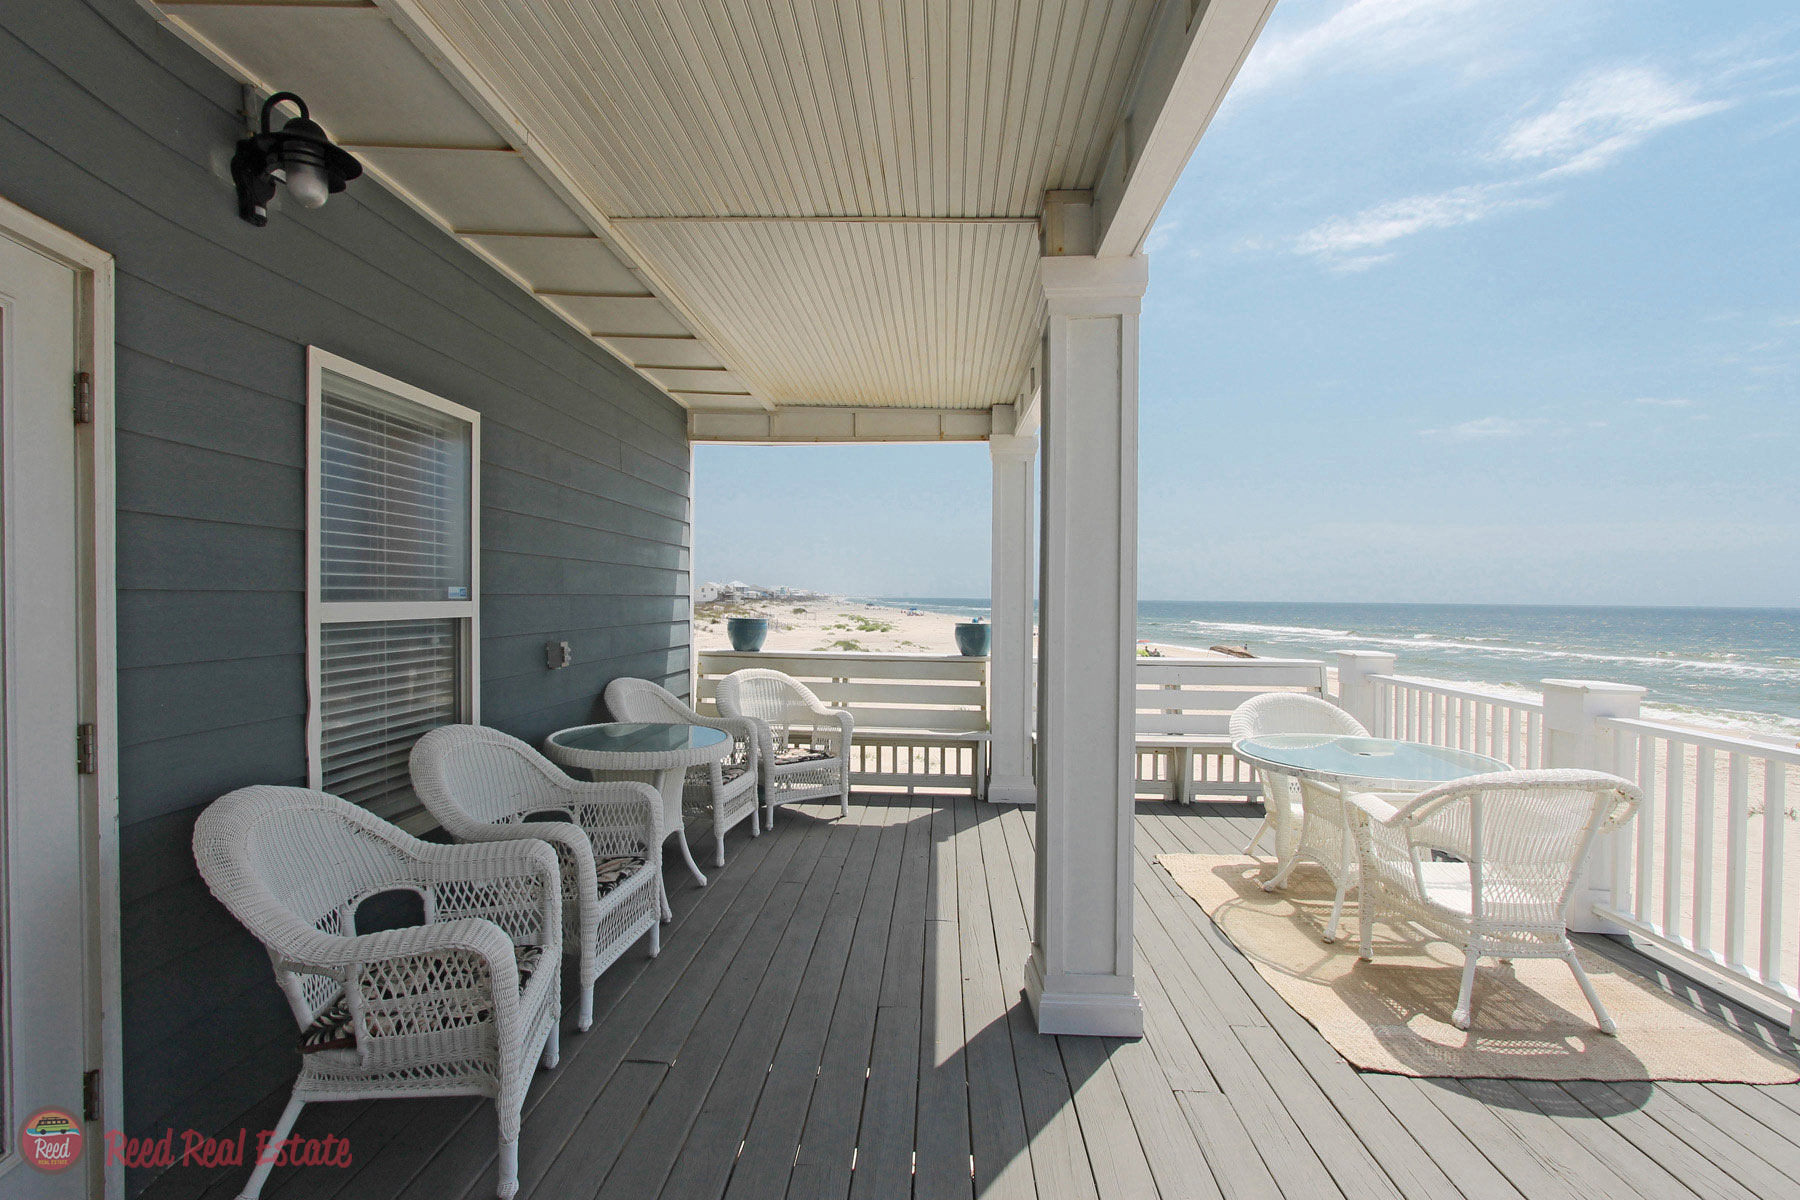 Large partially covered deck